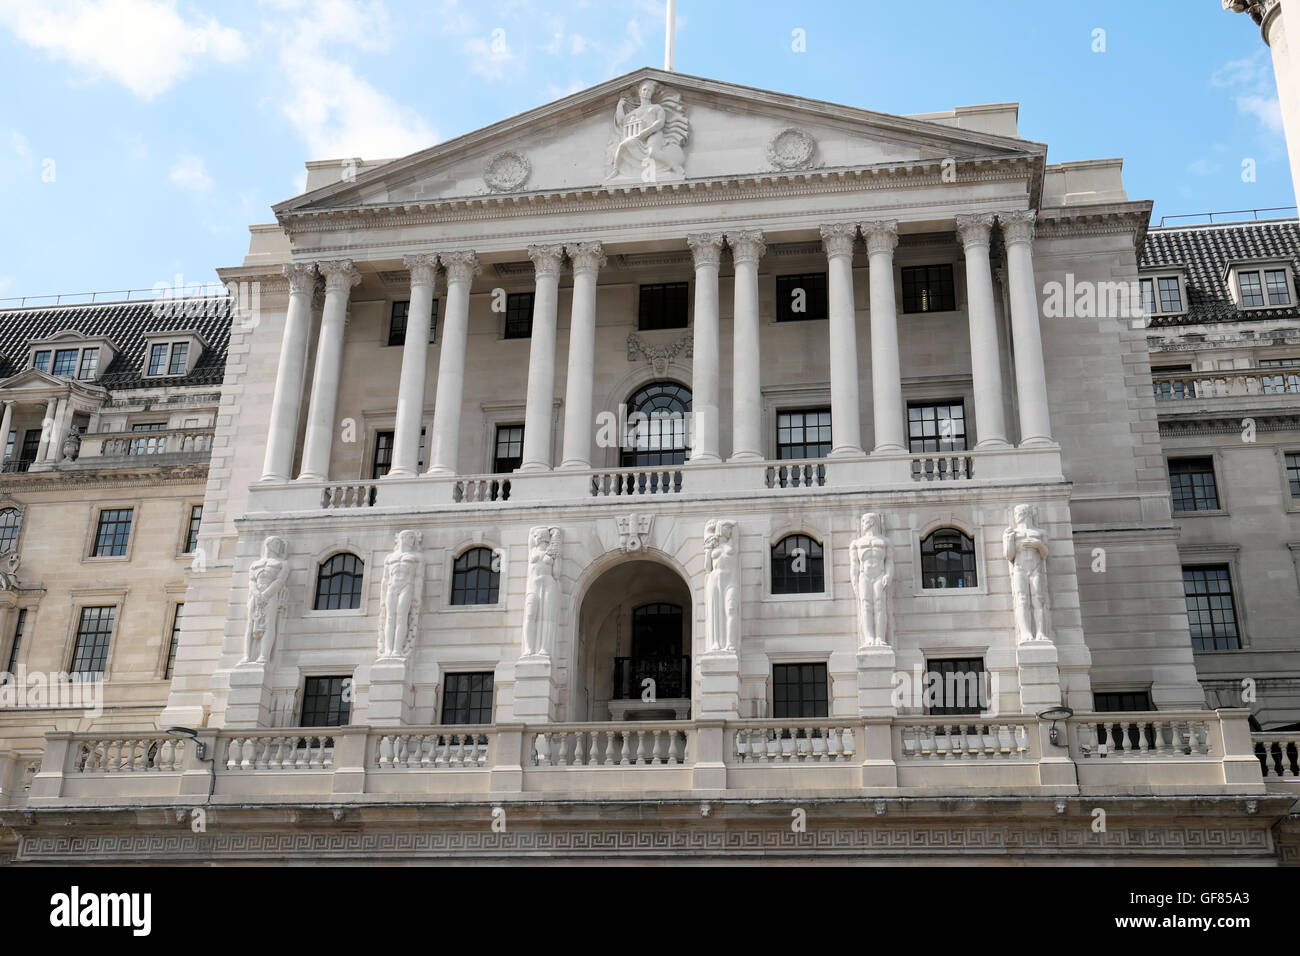 bank-of-england-building-exterior-facade-figures-and-old-lady-of-threadneedle-GF85A3.jpg?profile=RESIZE_400x